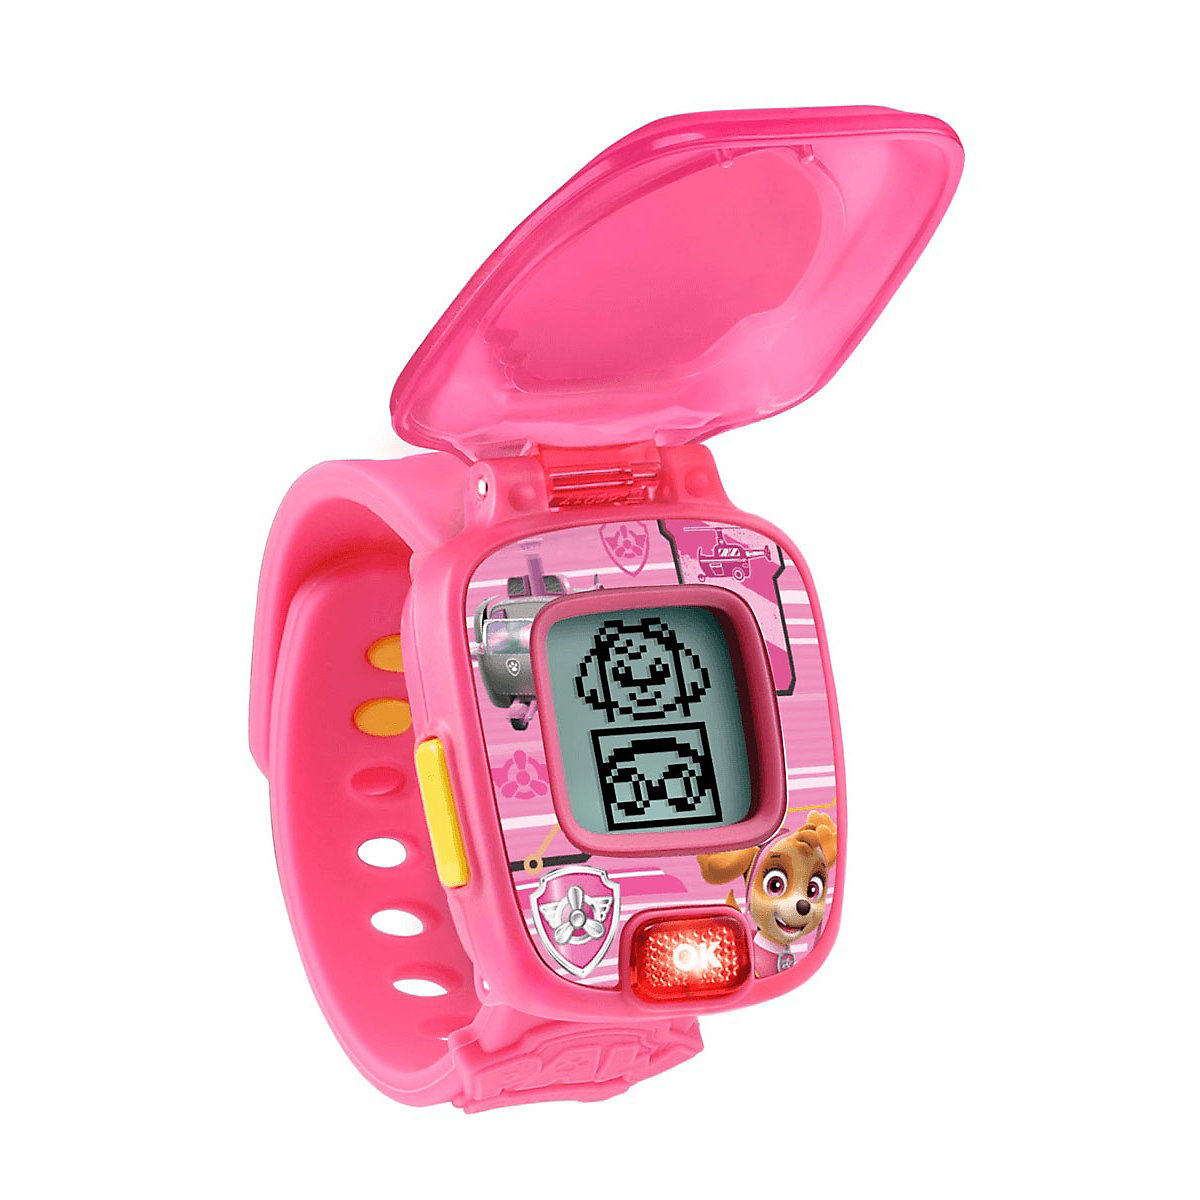 VTech Paw Patrol Skye Watch